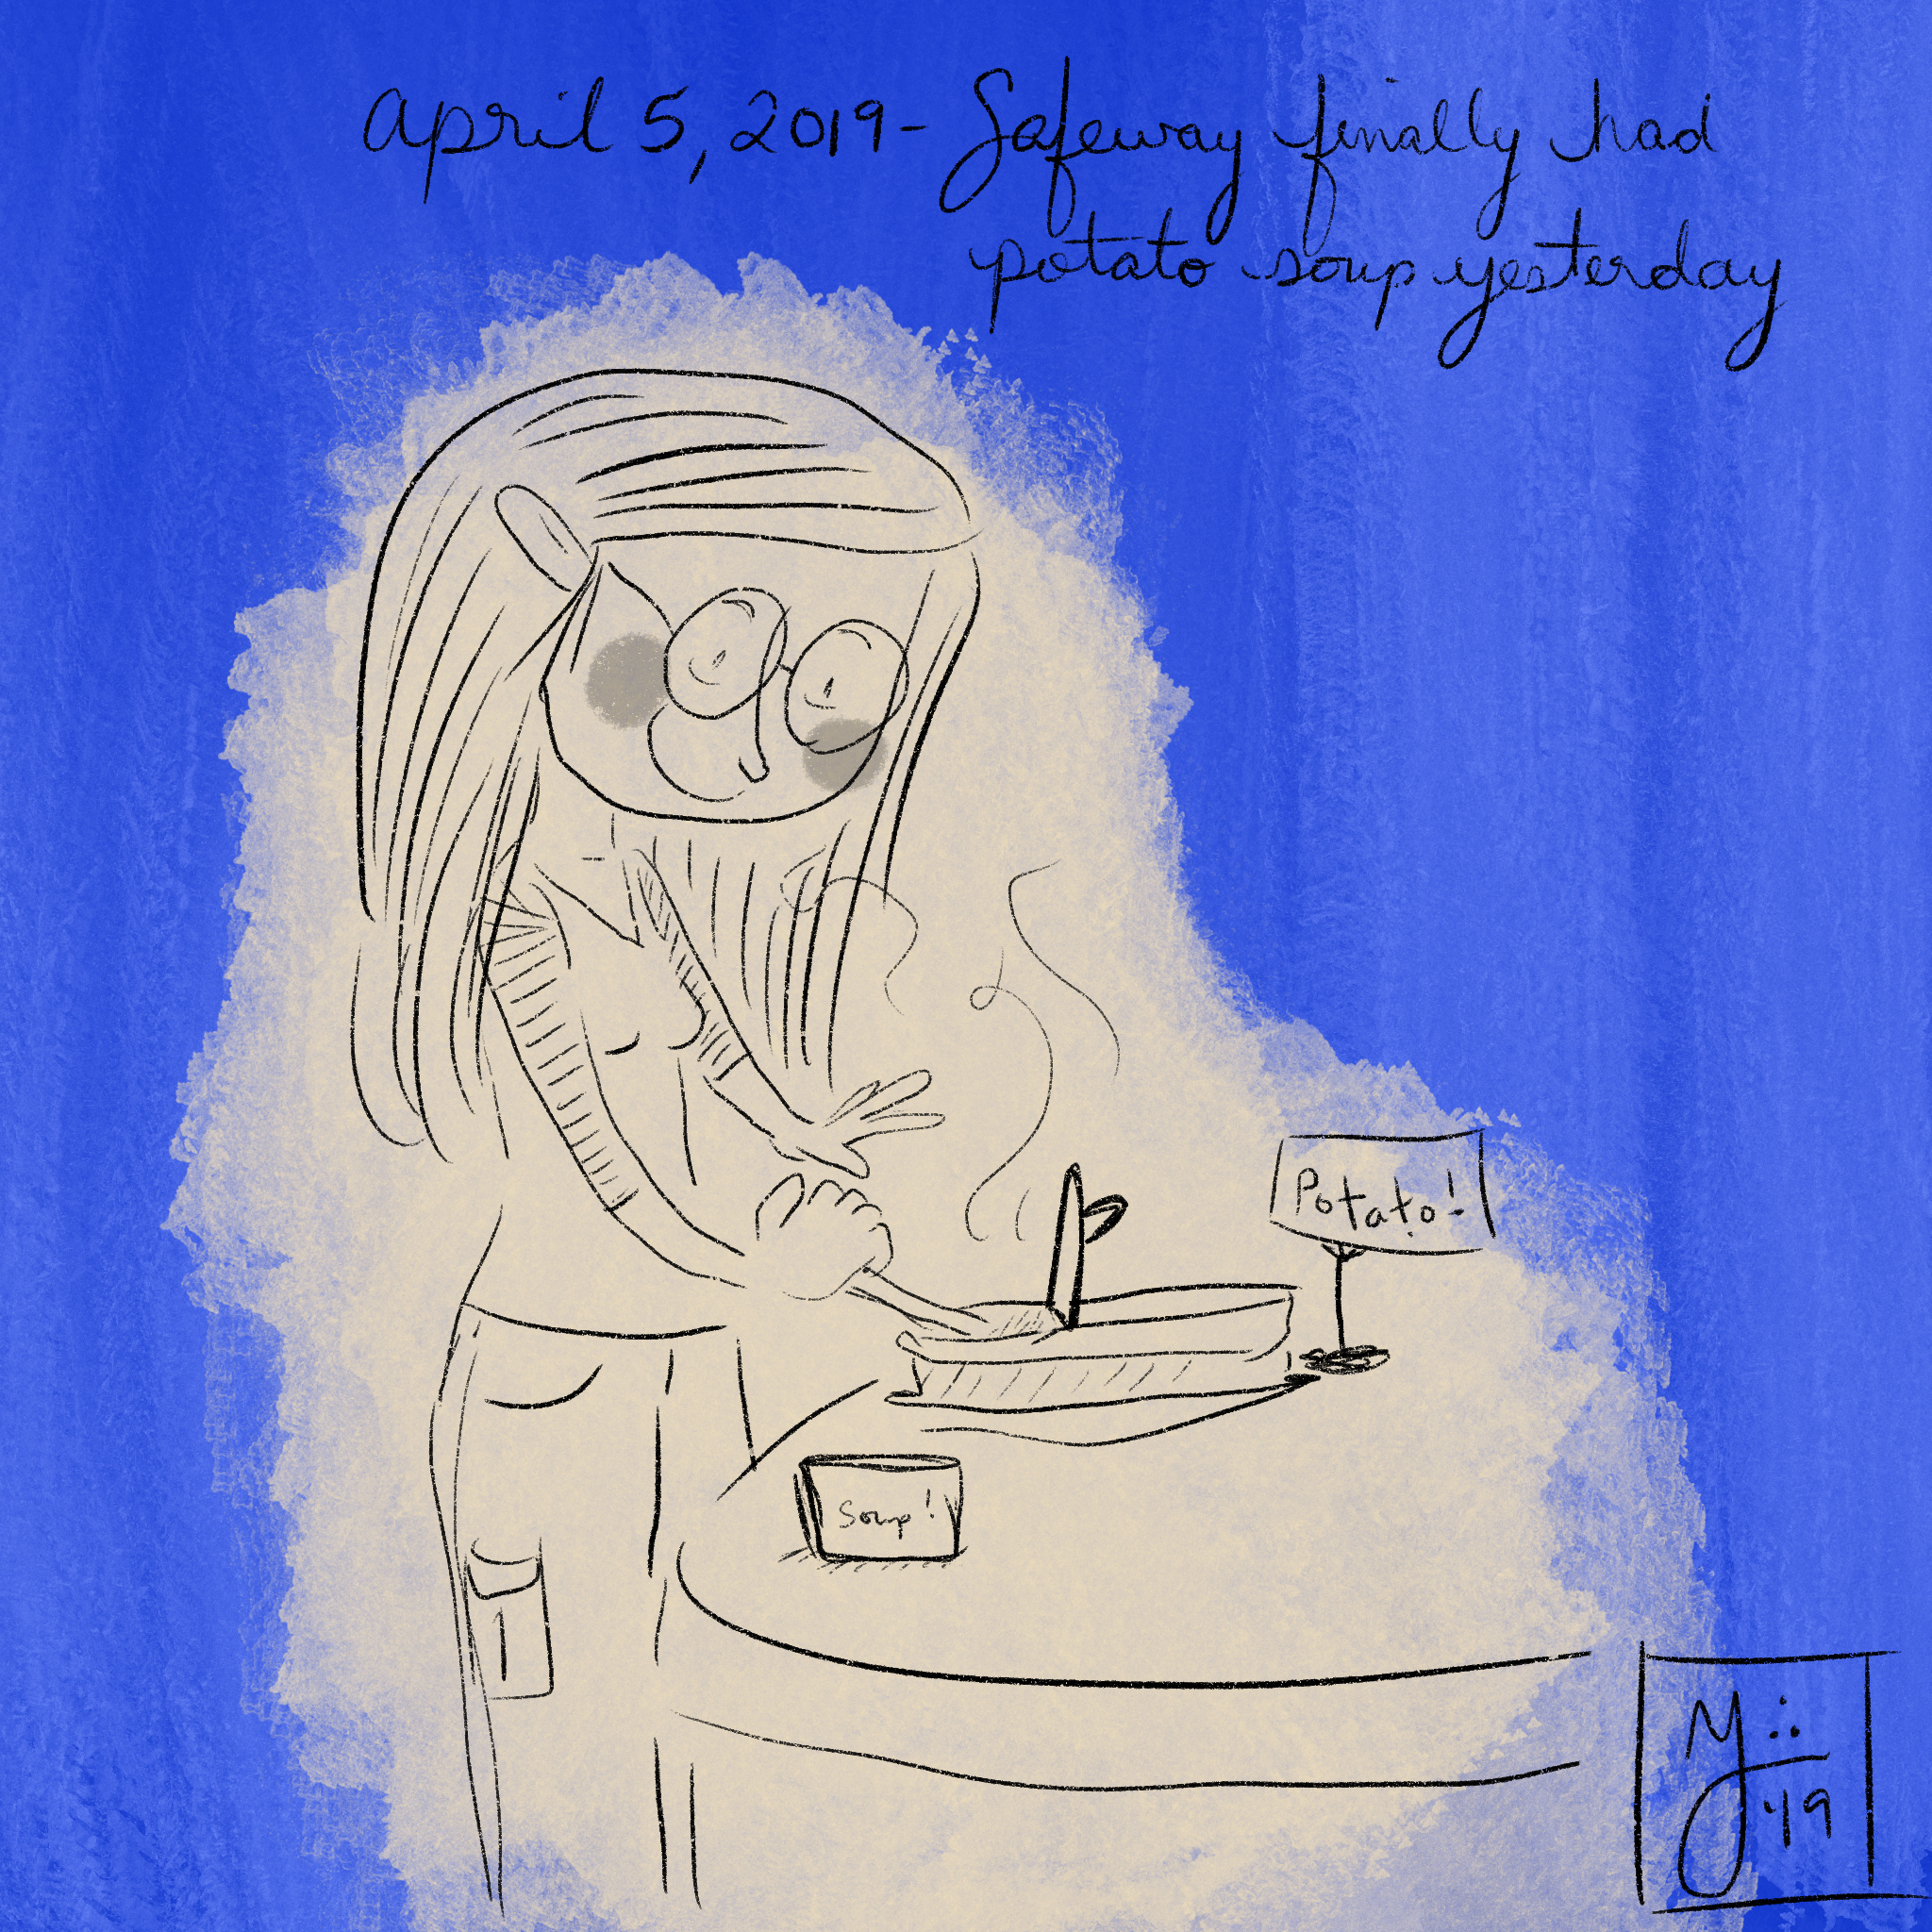 195 of 365 - I've already done a daily drawing about Safeway potato soup, but I don't care